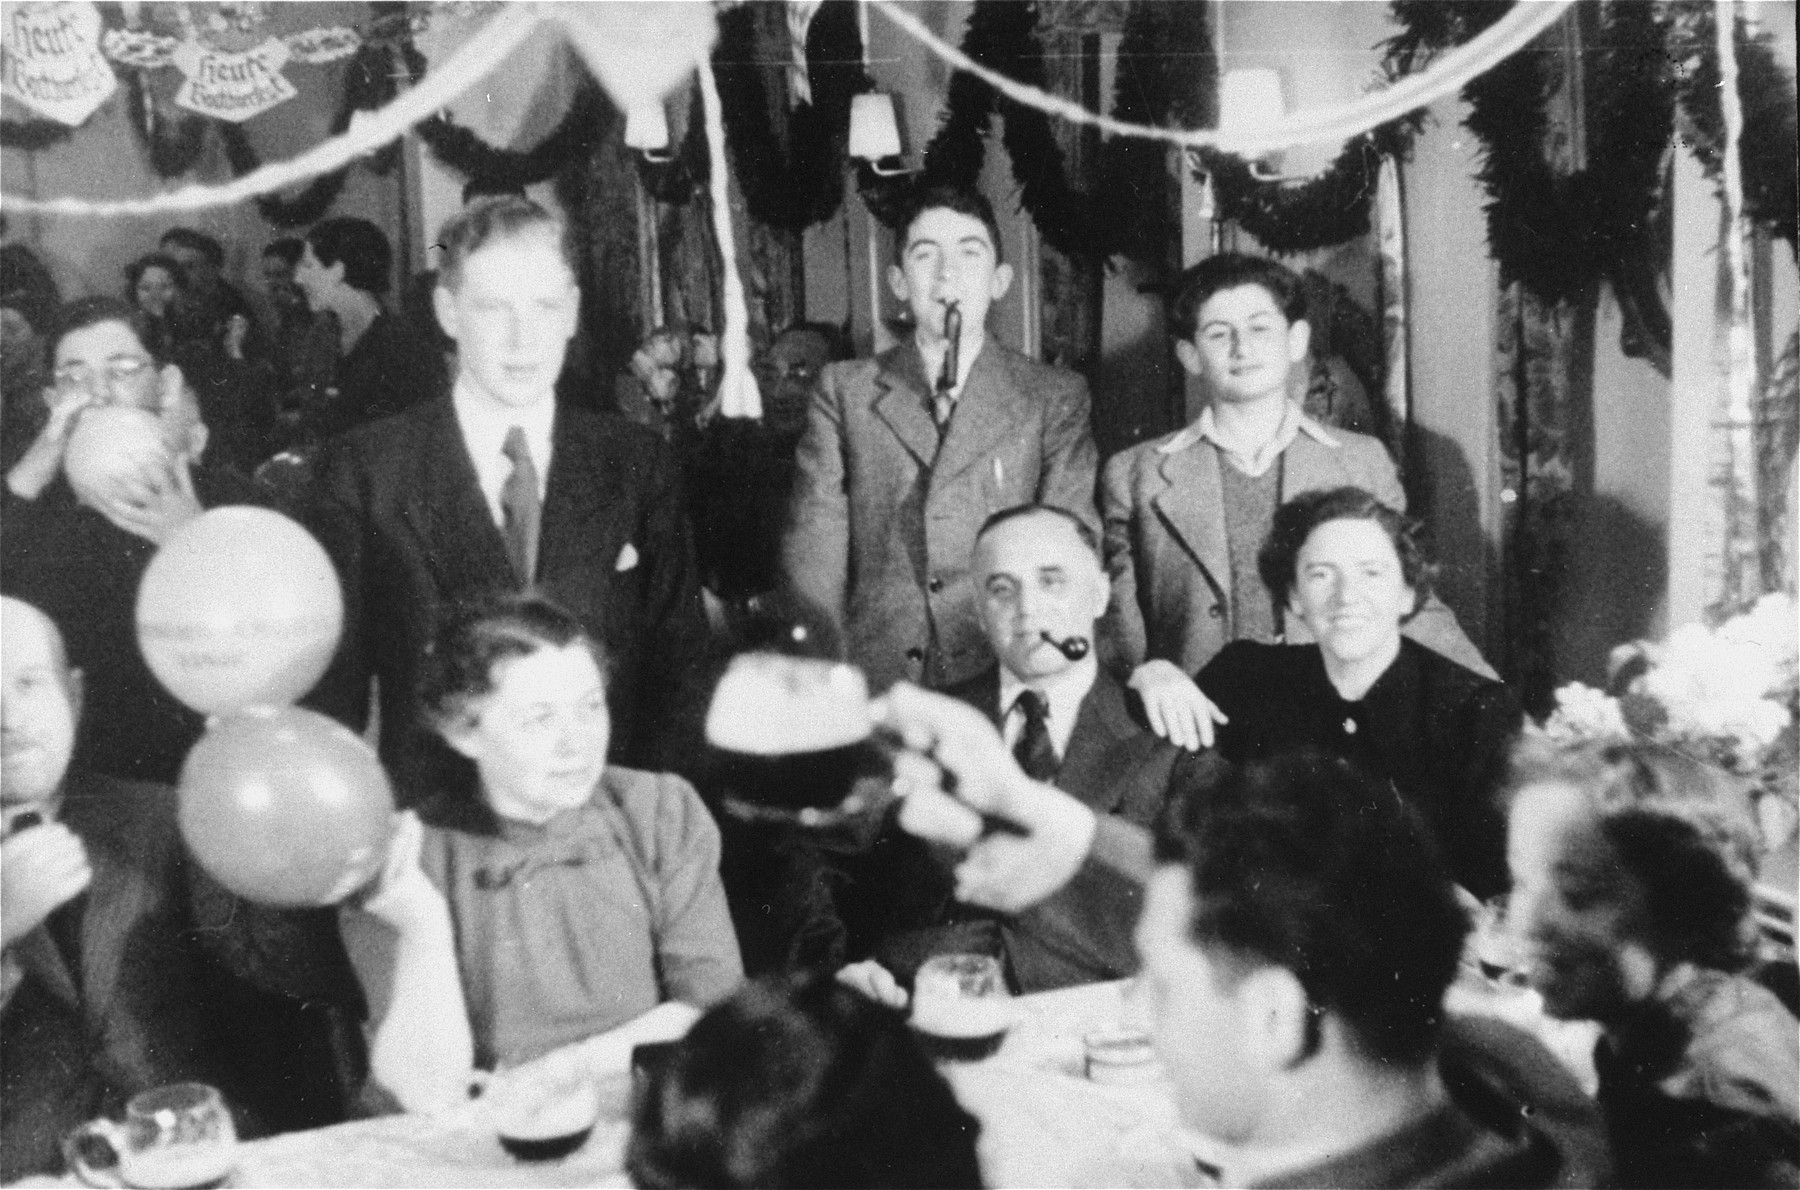 A party on board the MS St. Louis.   Among those pictured are Hermann and Rita Goldstein.